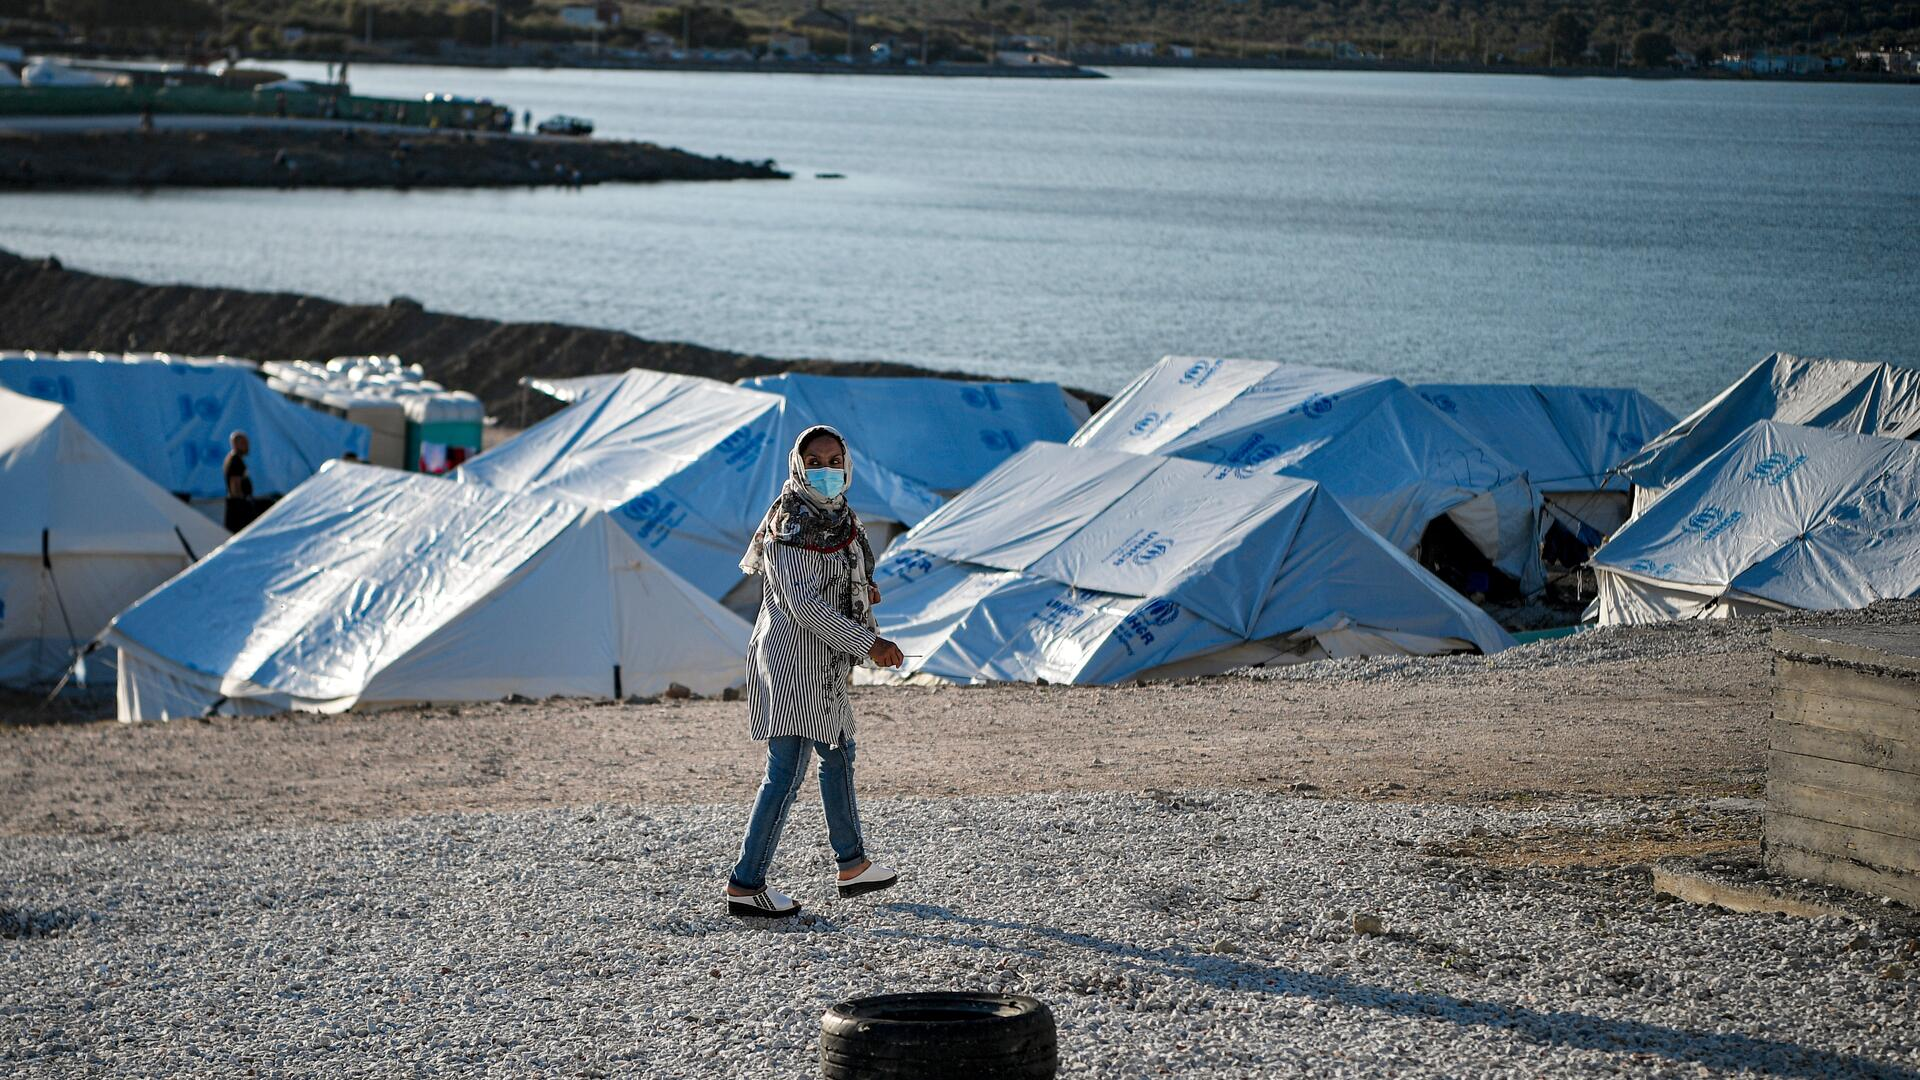 Rahima walks past tents in the refugee camp her family was relocated to on the Greek island of Lesbos.